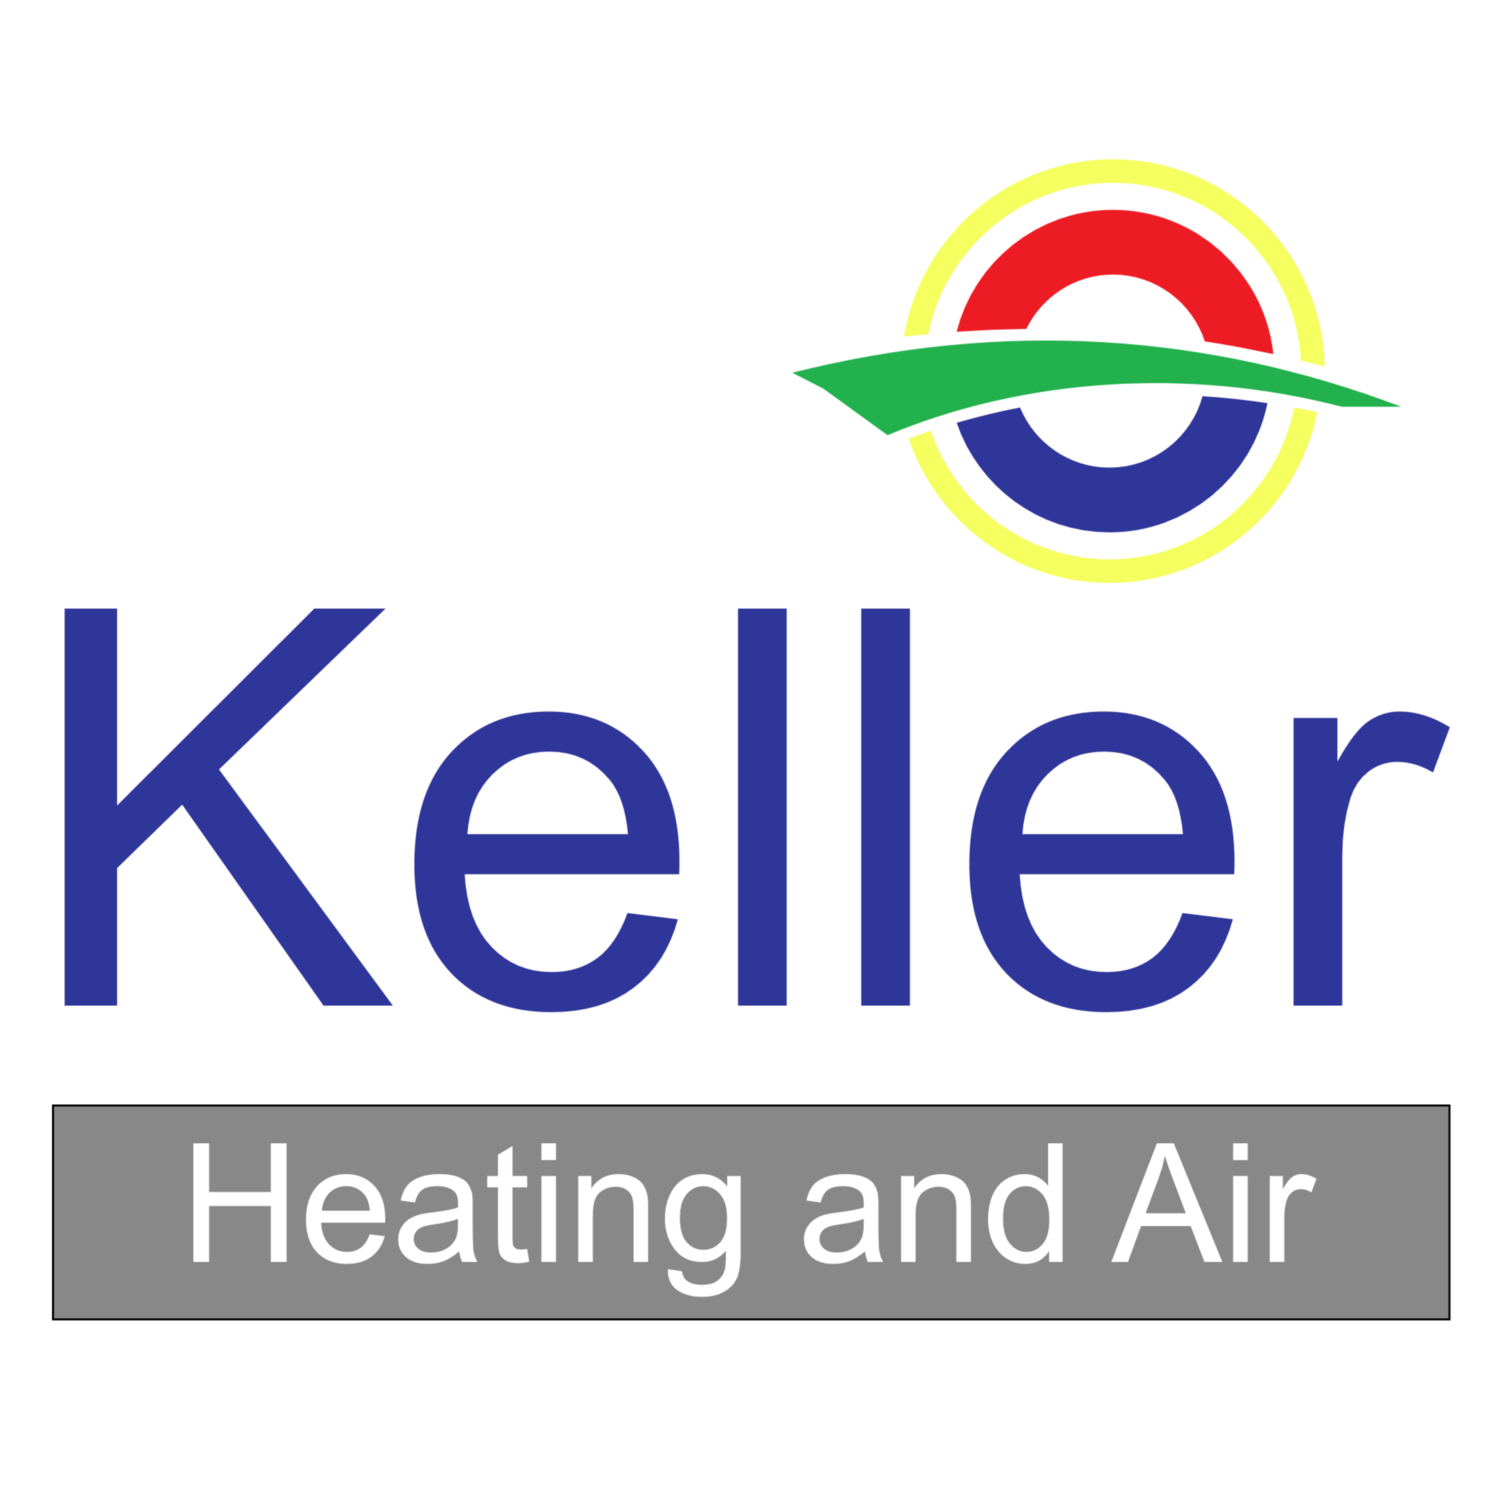 Keller Heating and Air